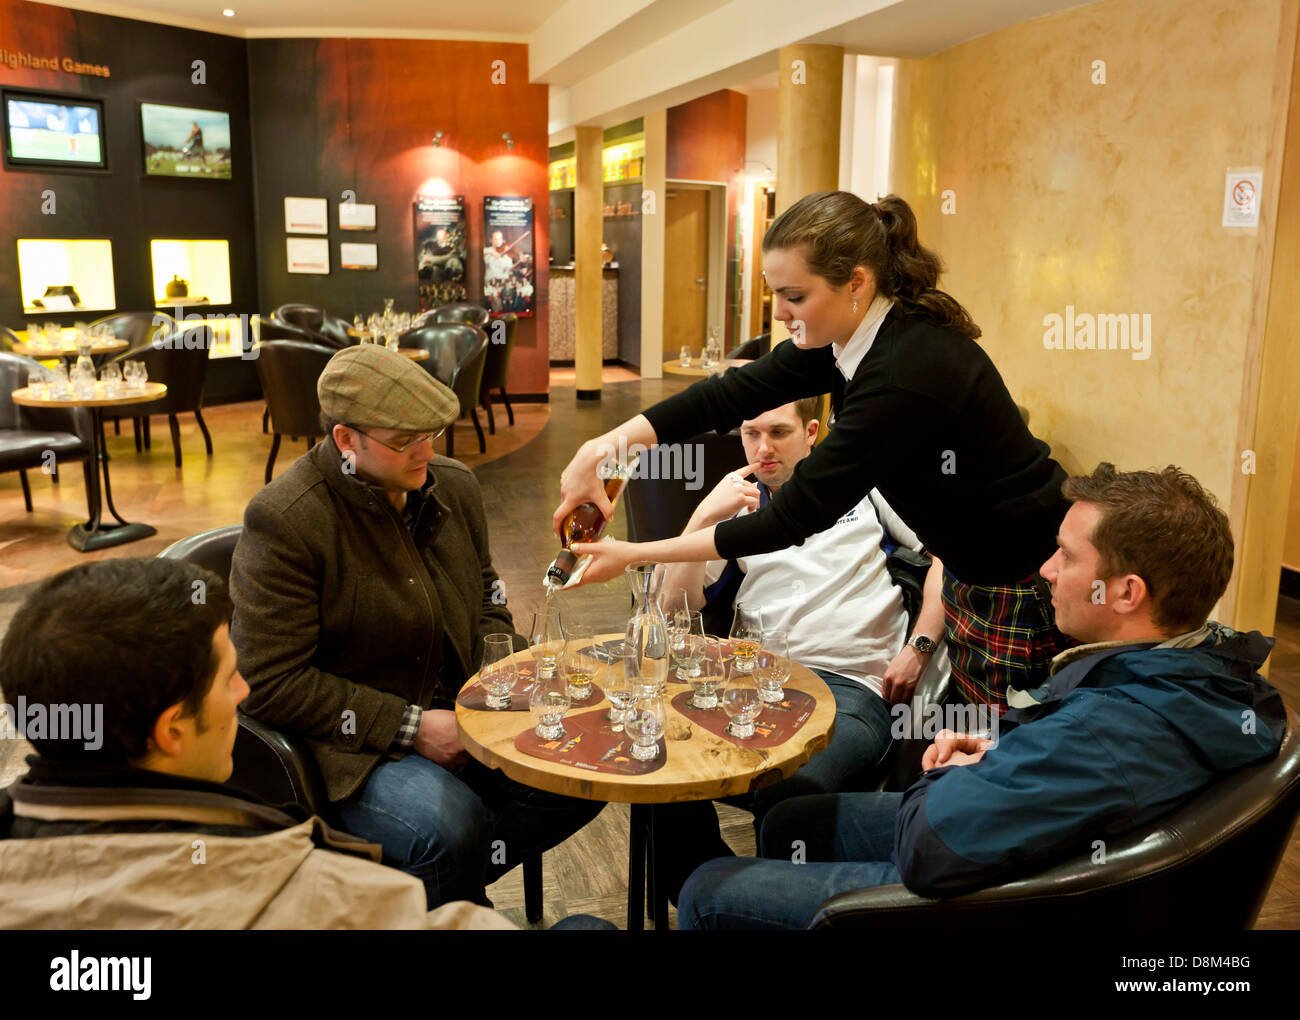 whisky tasting and sampling at the Glenfiddich whisky distillery visitors centre  Dufftown Speyside Scotland UK - Stock Image